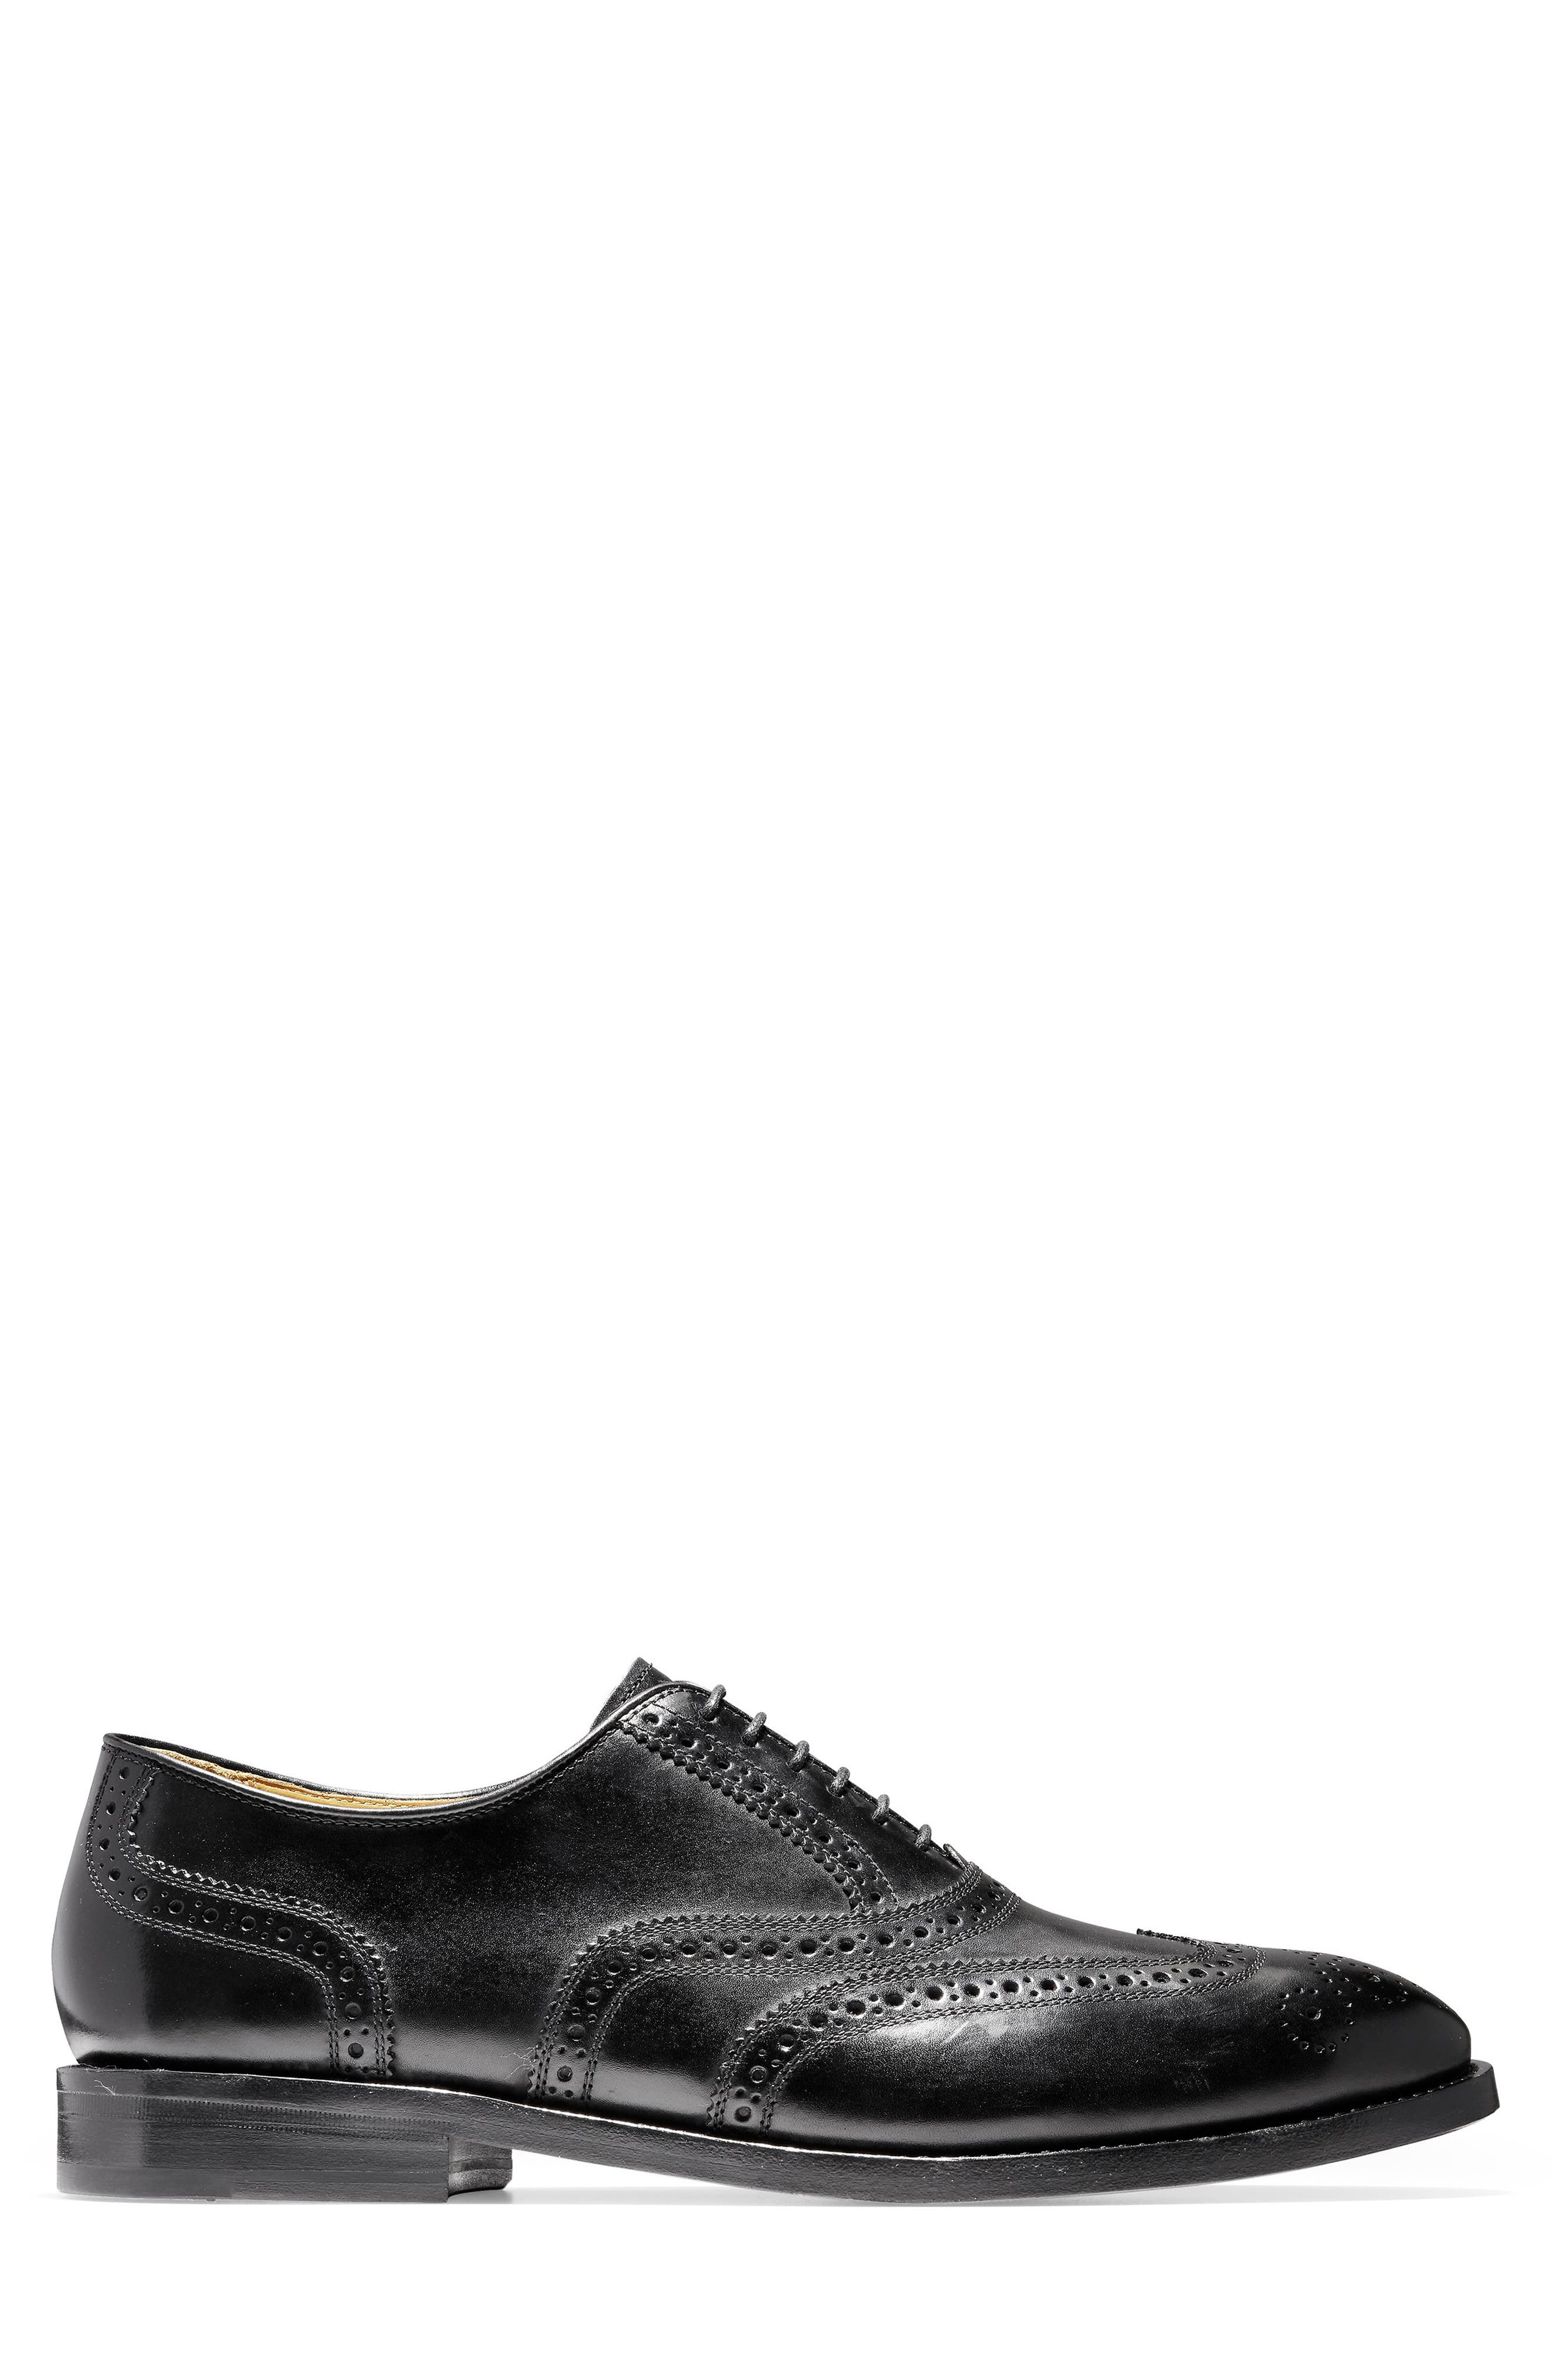 American Classics Kneeland Wingtip,                             Alternate thumbnail 3, color,                             BLACK LEATHER